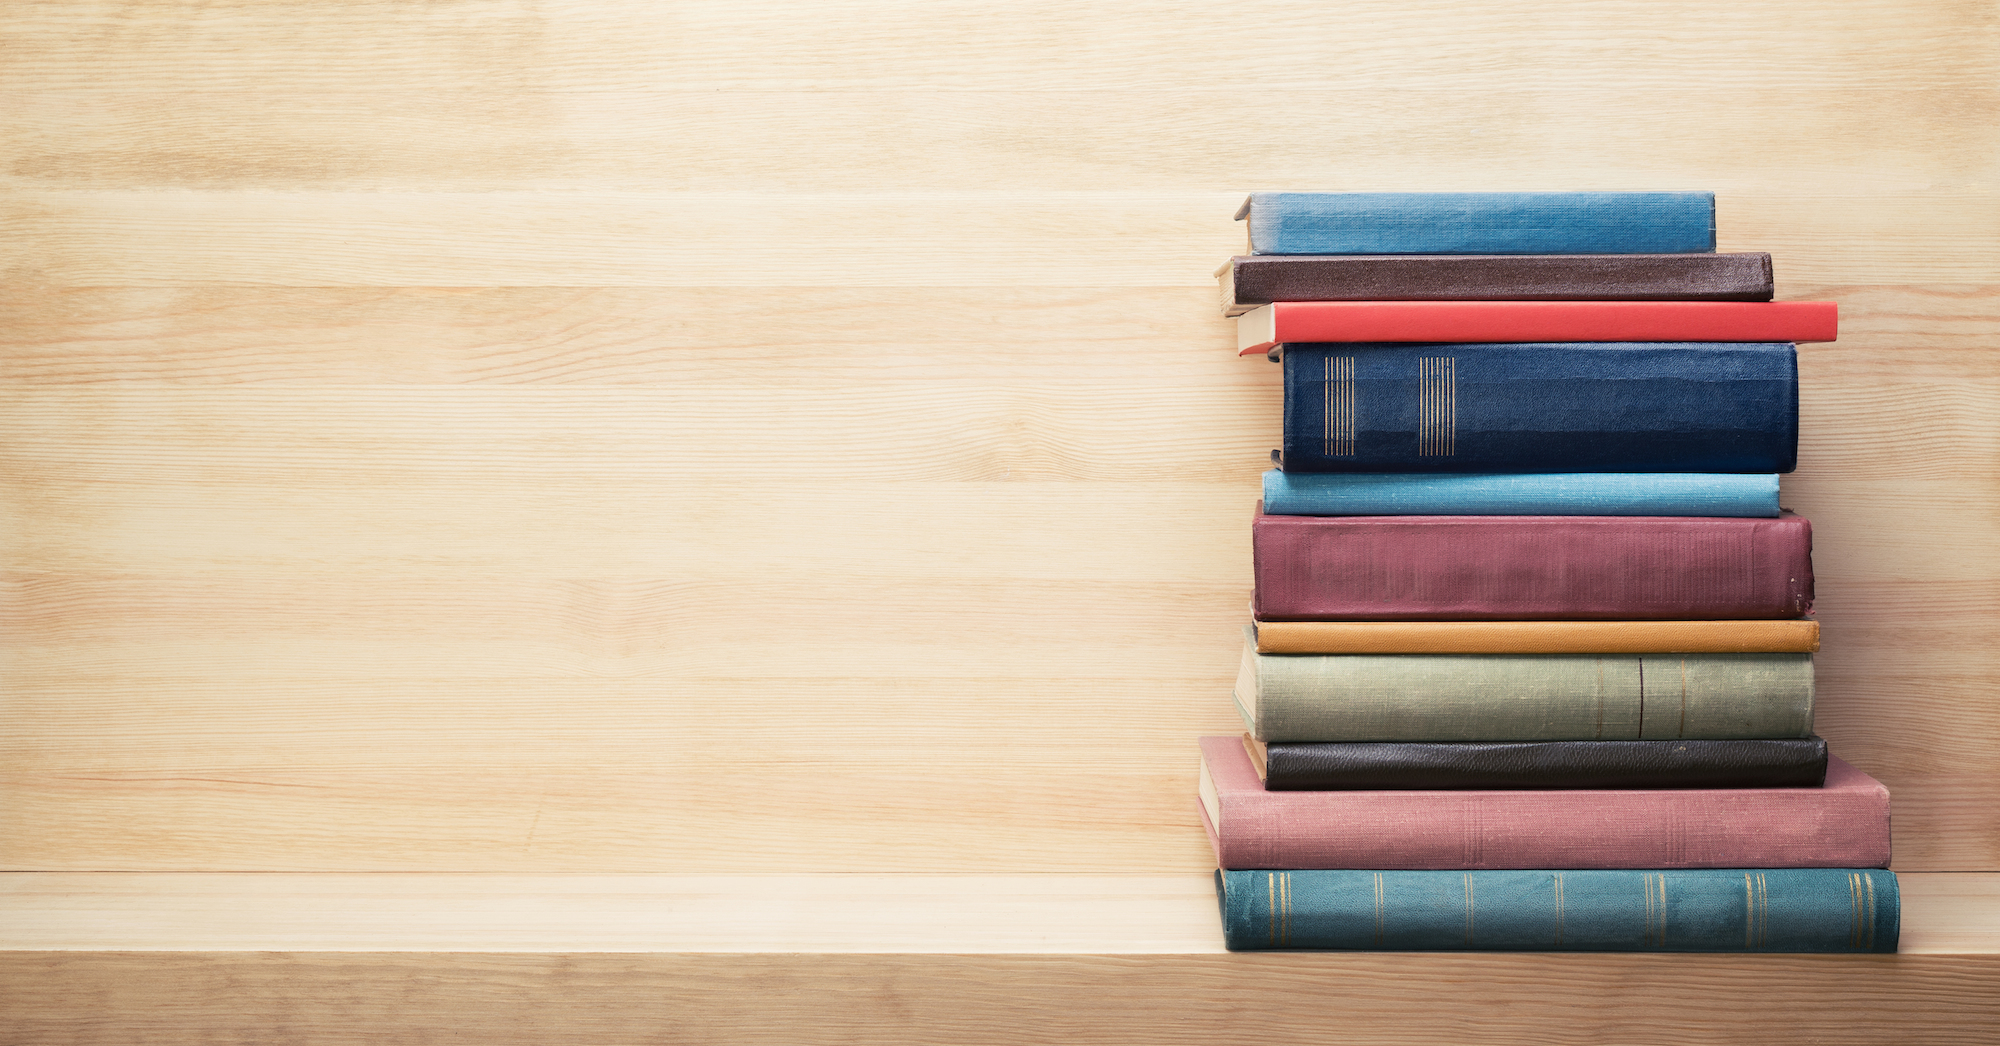 5 Books to Inspire Your Creativity in 2014